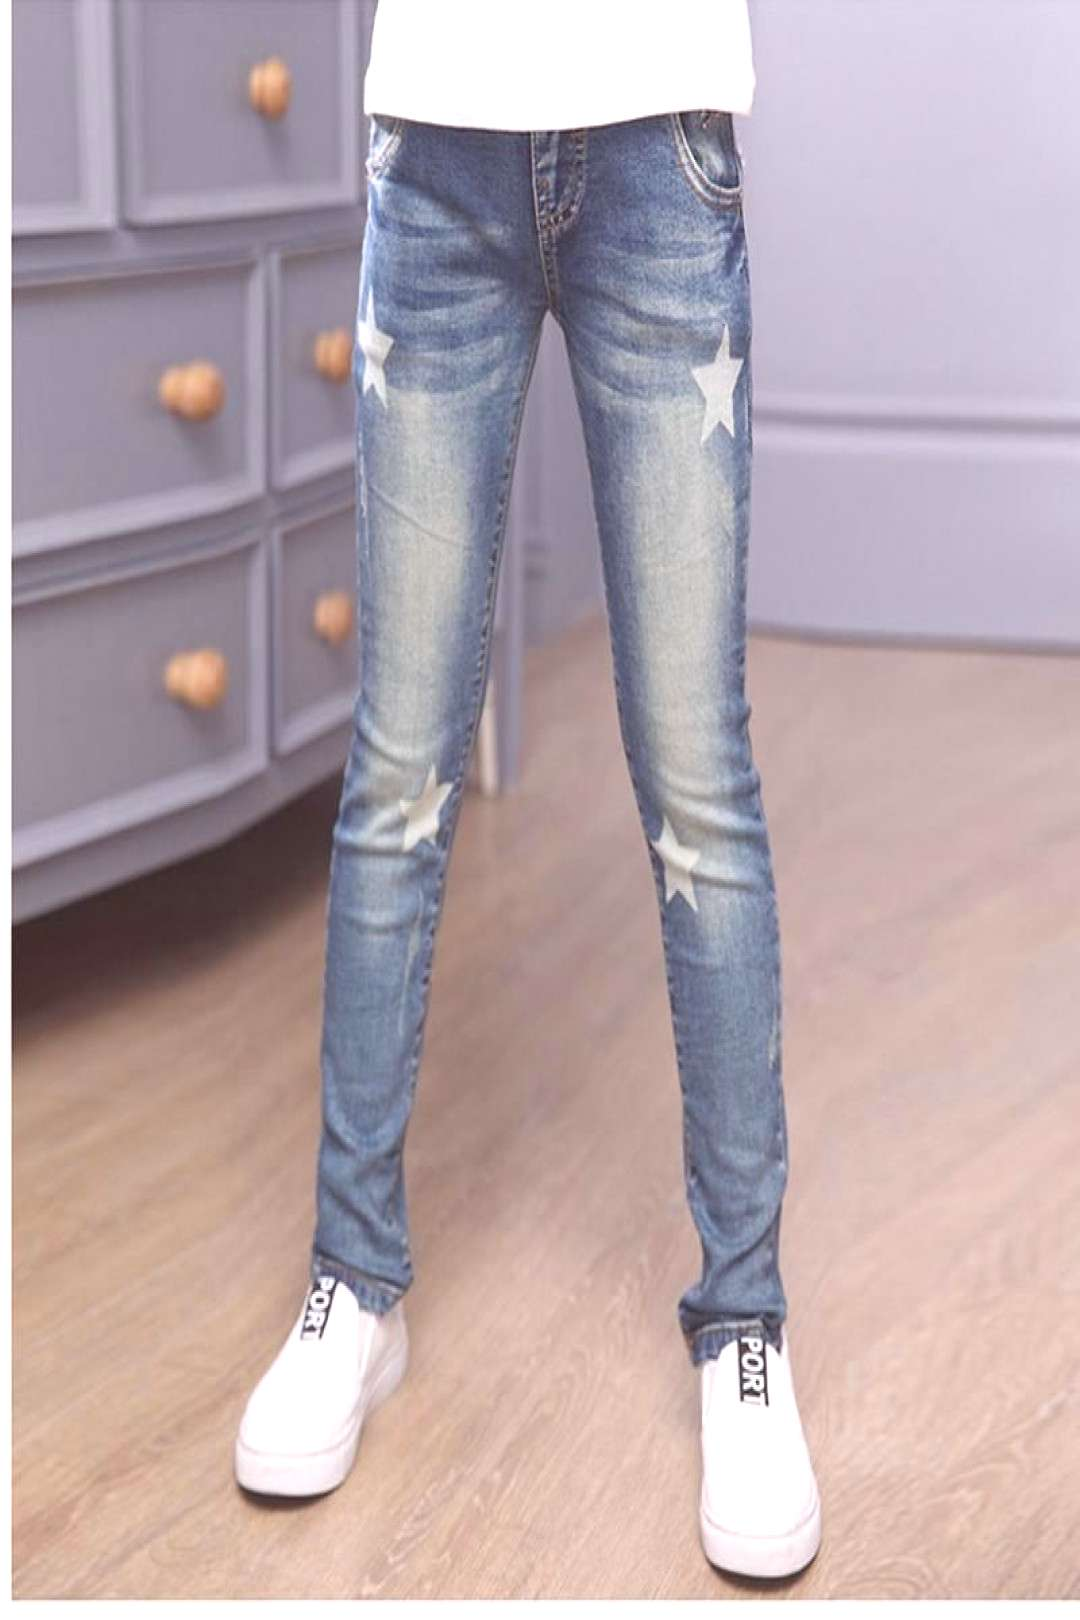 2017 New Style Baby Girl Jeans Lovely Kids Pants Casual Trousers Children Clothes Denim Pants For G